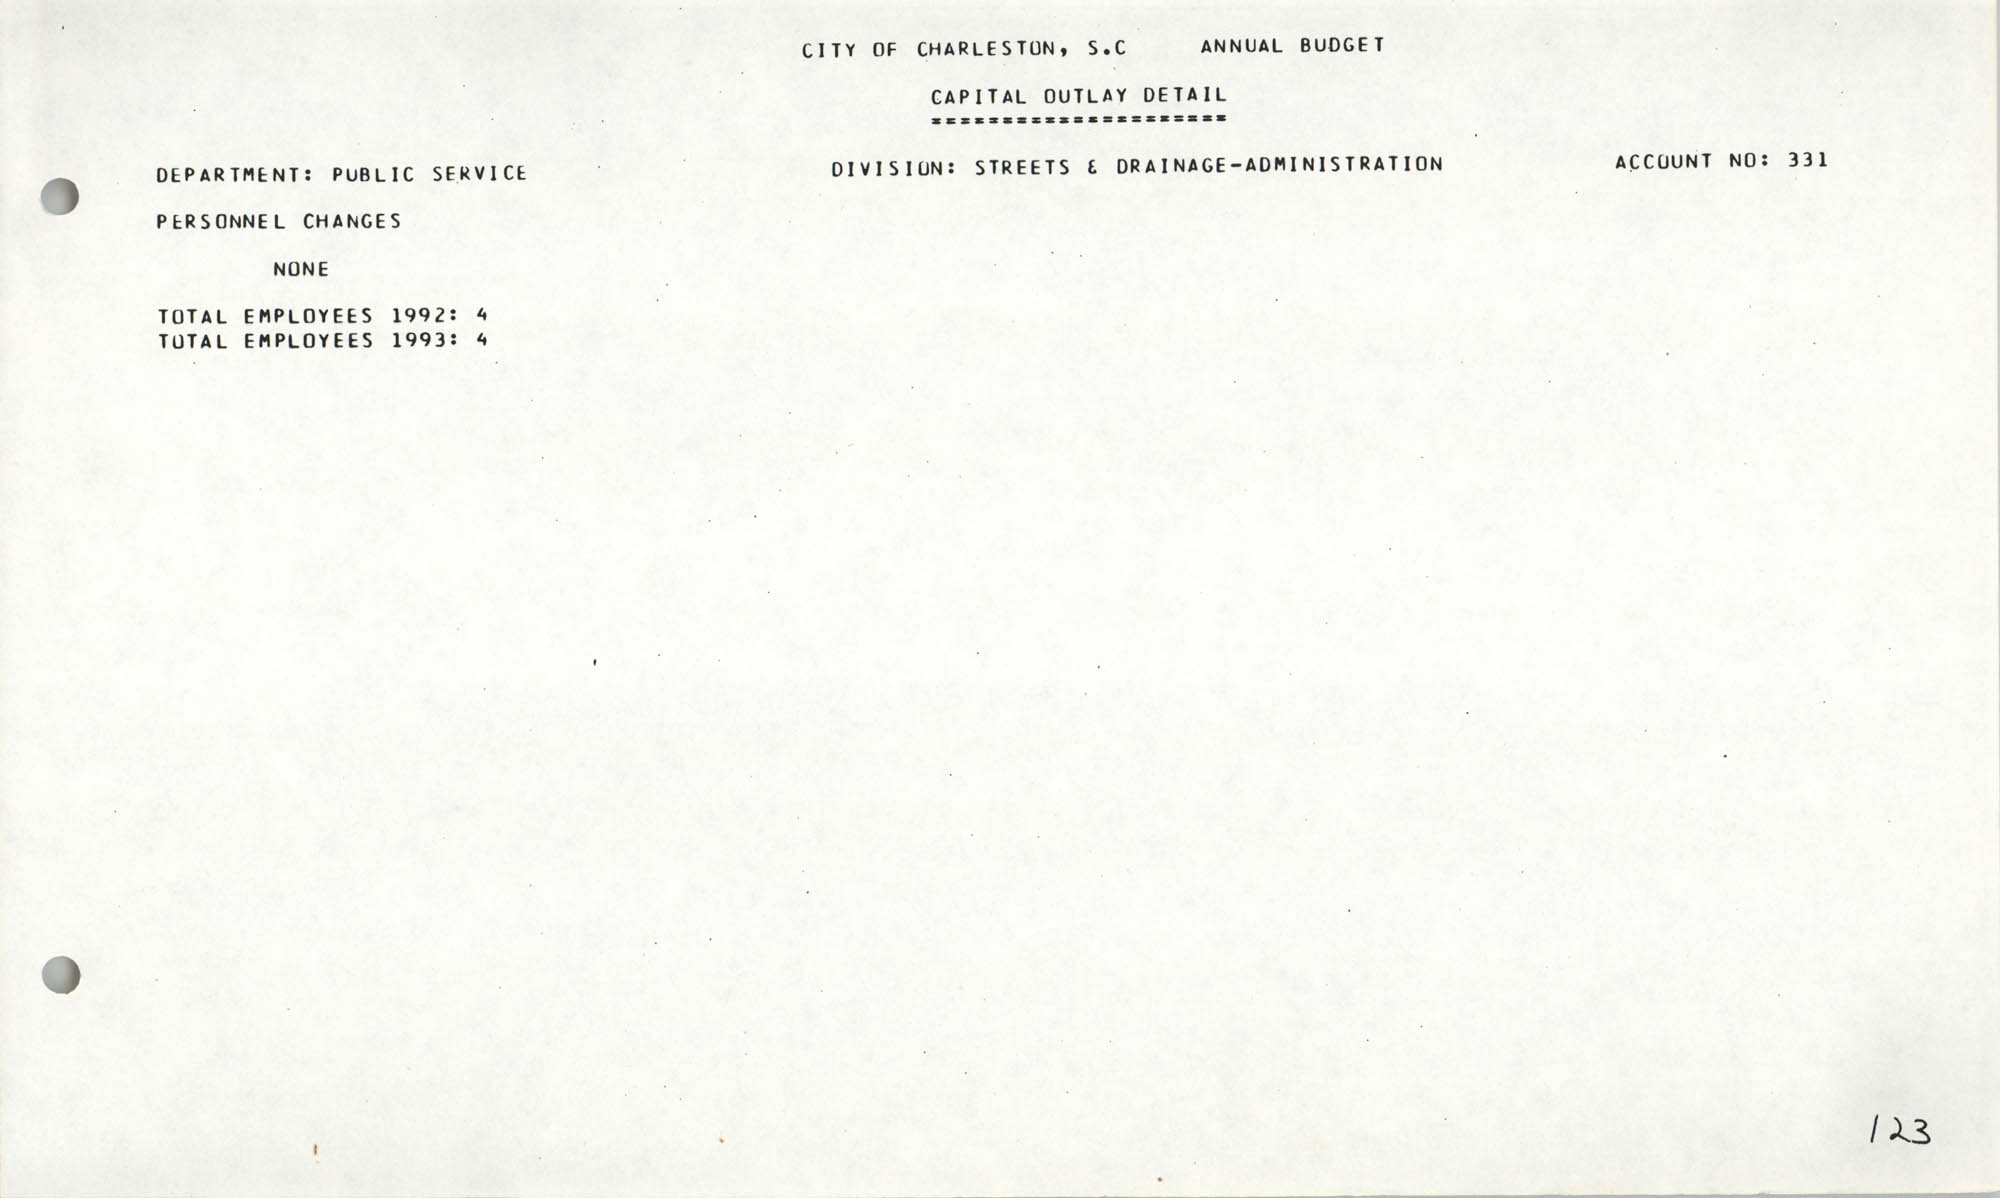 The City Council of Charleston, South Carolina, 1993 Budget, Page 123